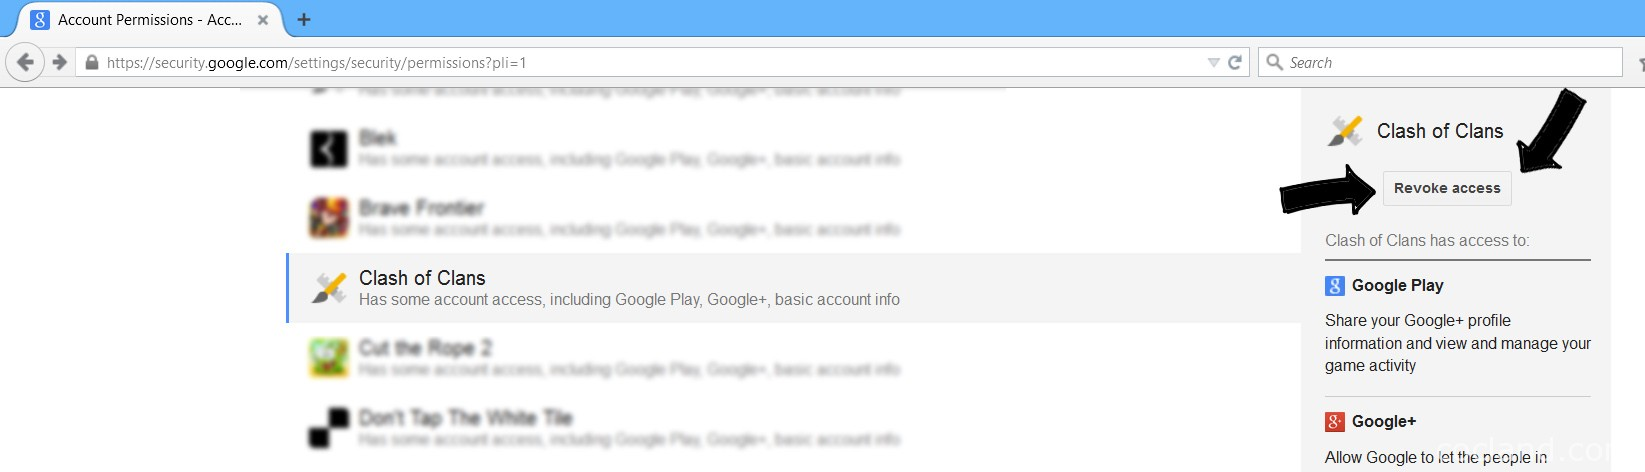 Removing Clash of Clans from Google Account